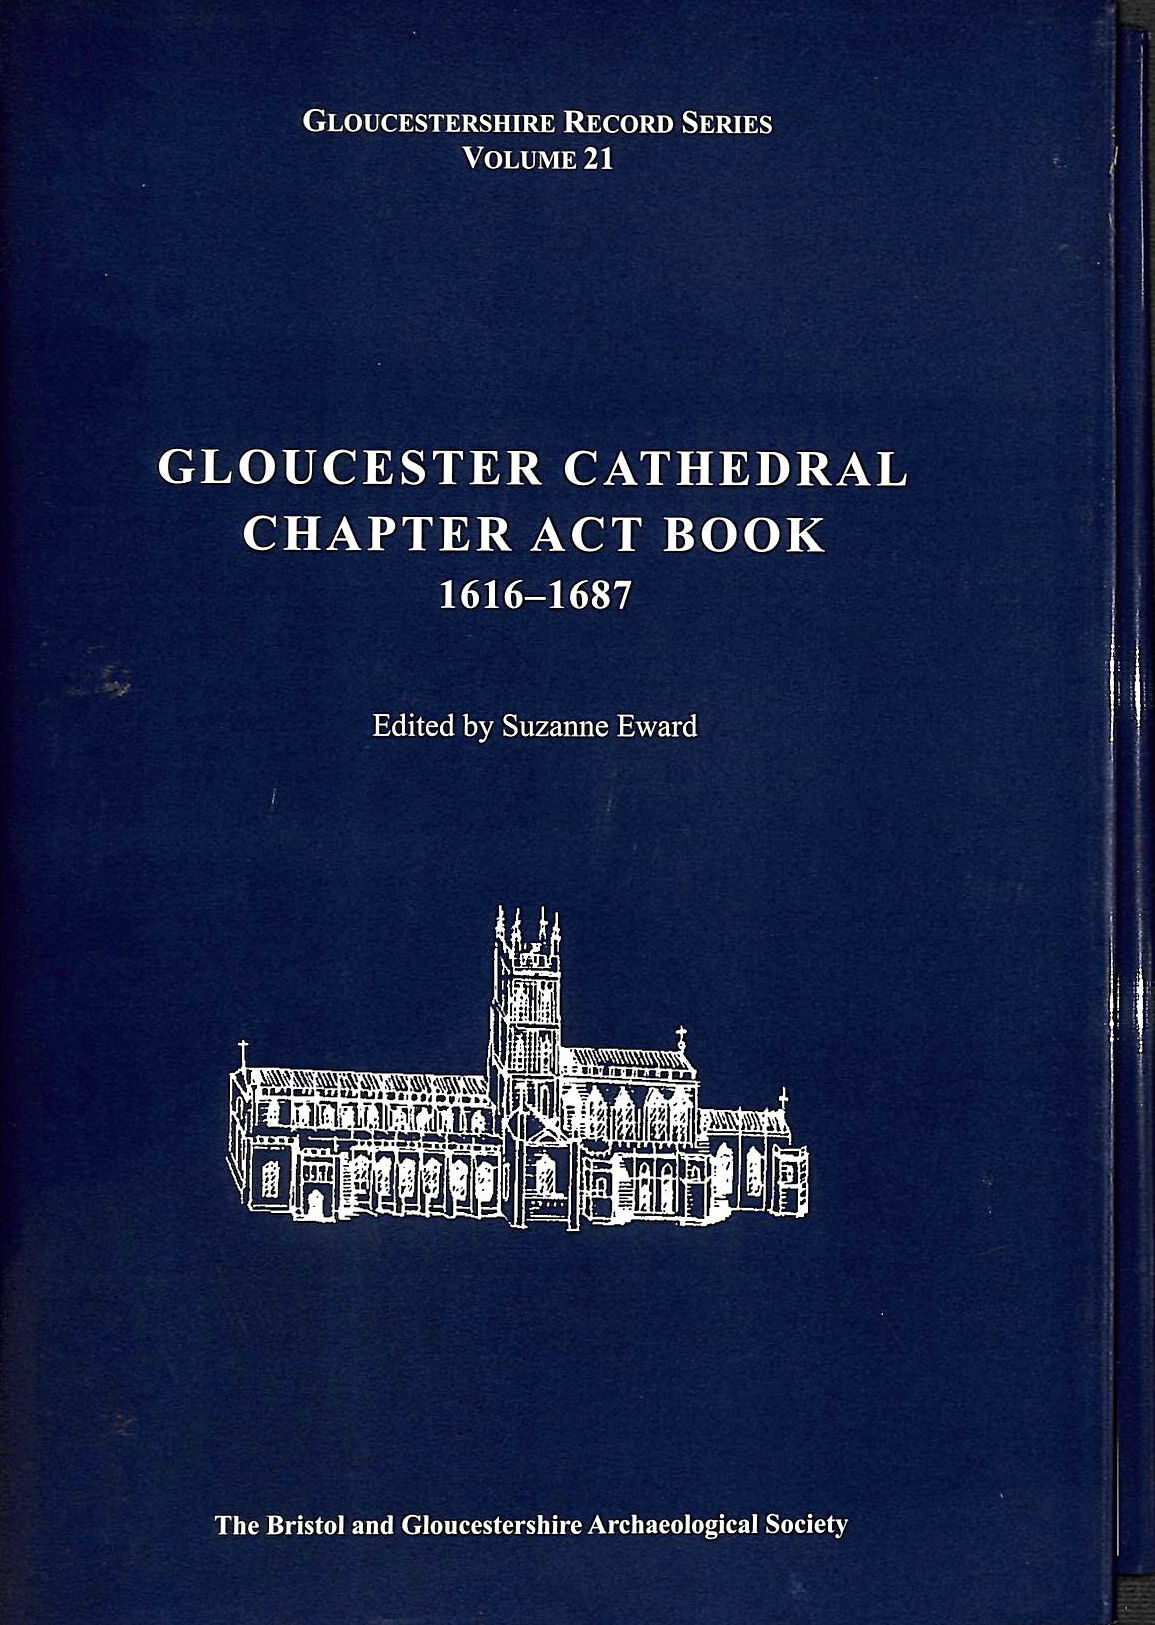 Image for Gloucester Cathedral Chapter Act Book 1616-1687 (Bristol and Gloucestershire Archaeological Society Gloucestershire Record Series)